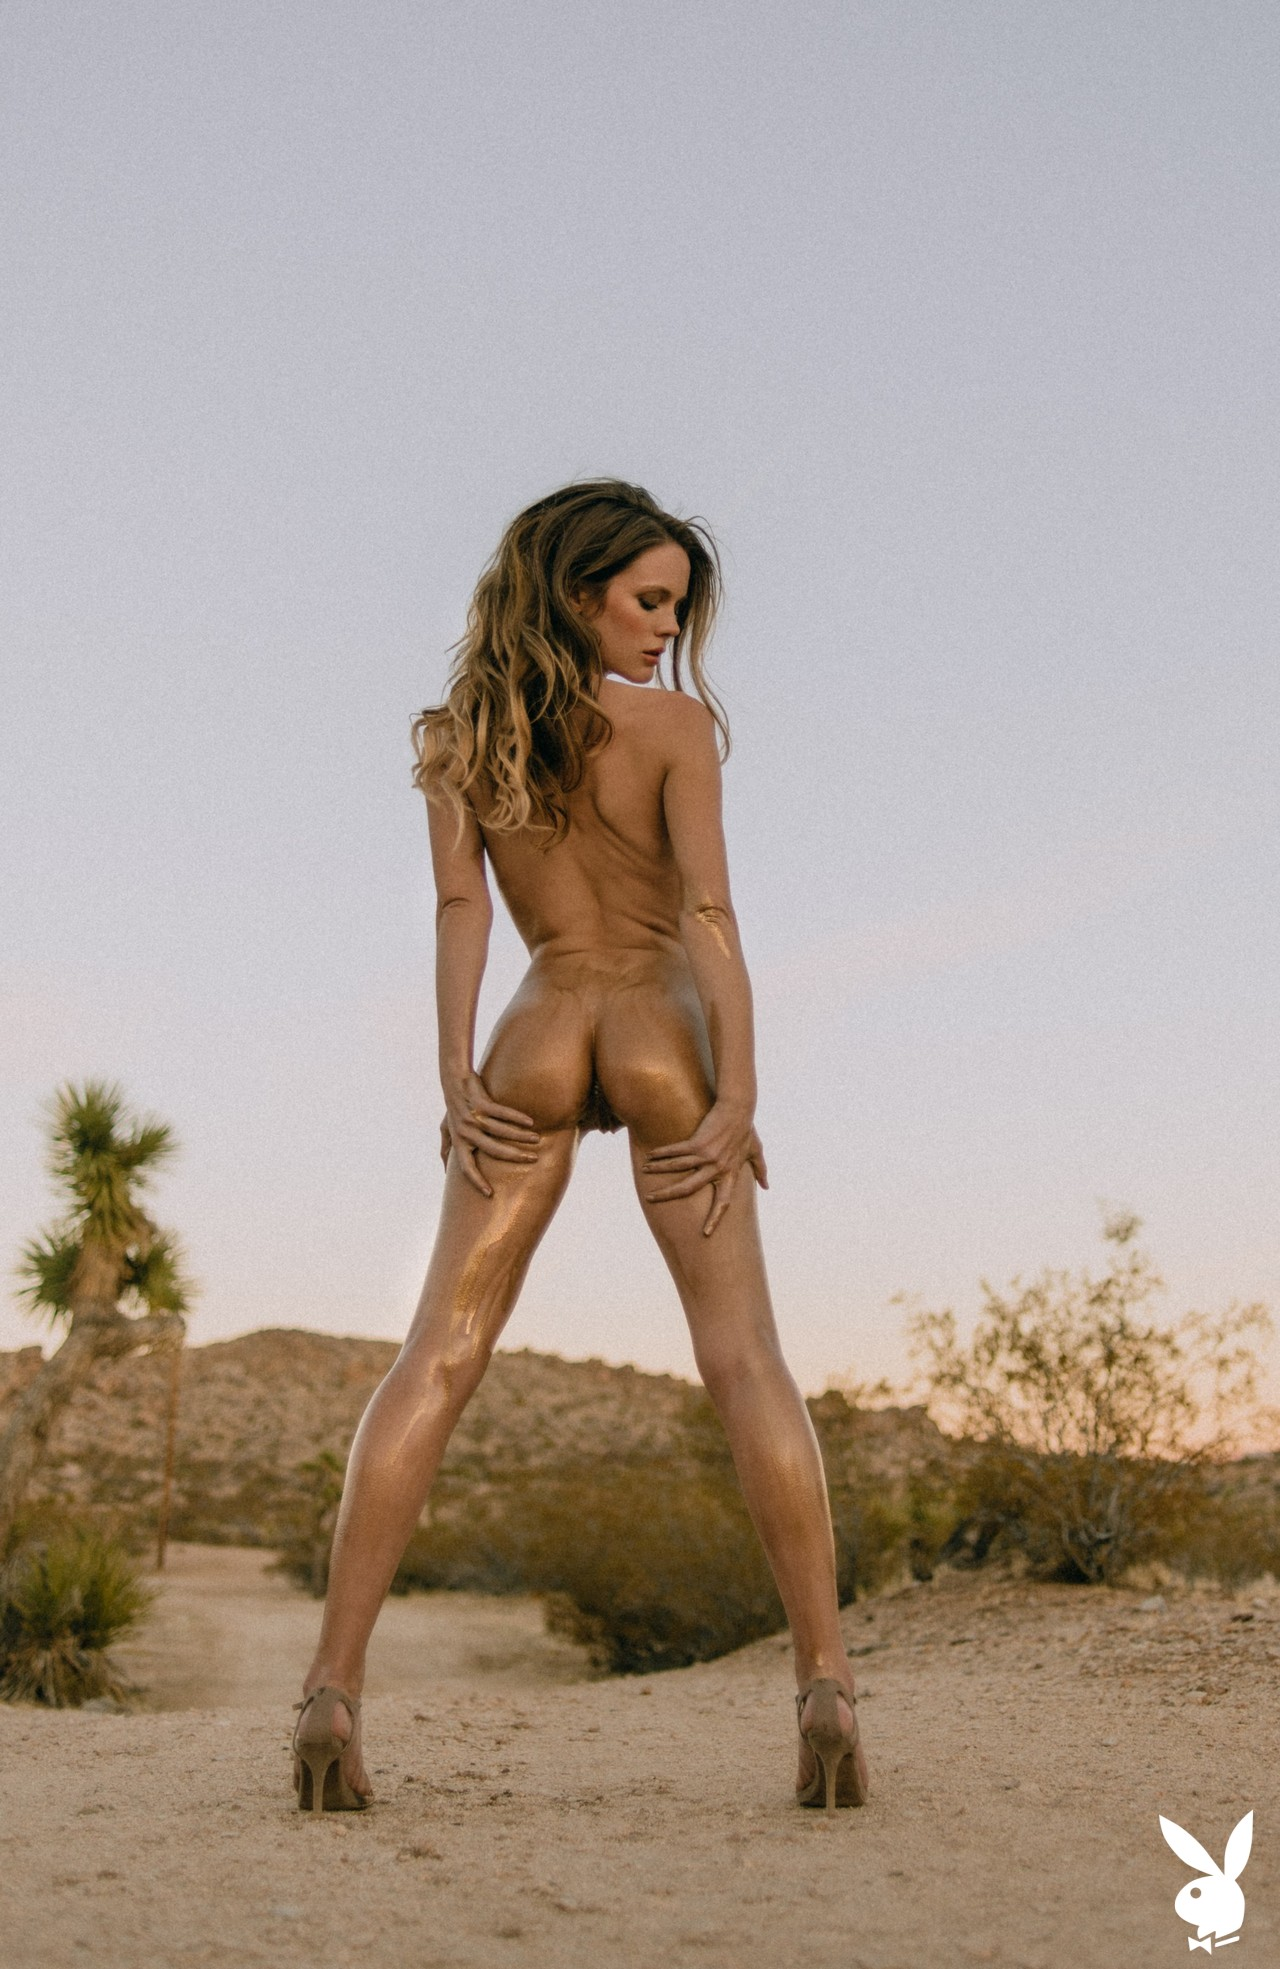 Ora Young In Dessert Shimmer Playboy Plus (25)